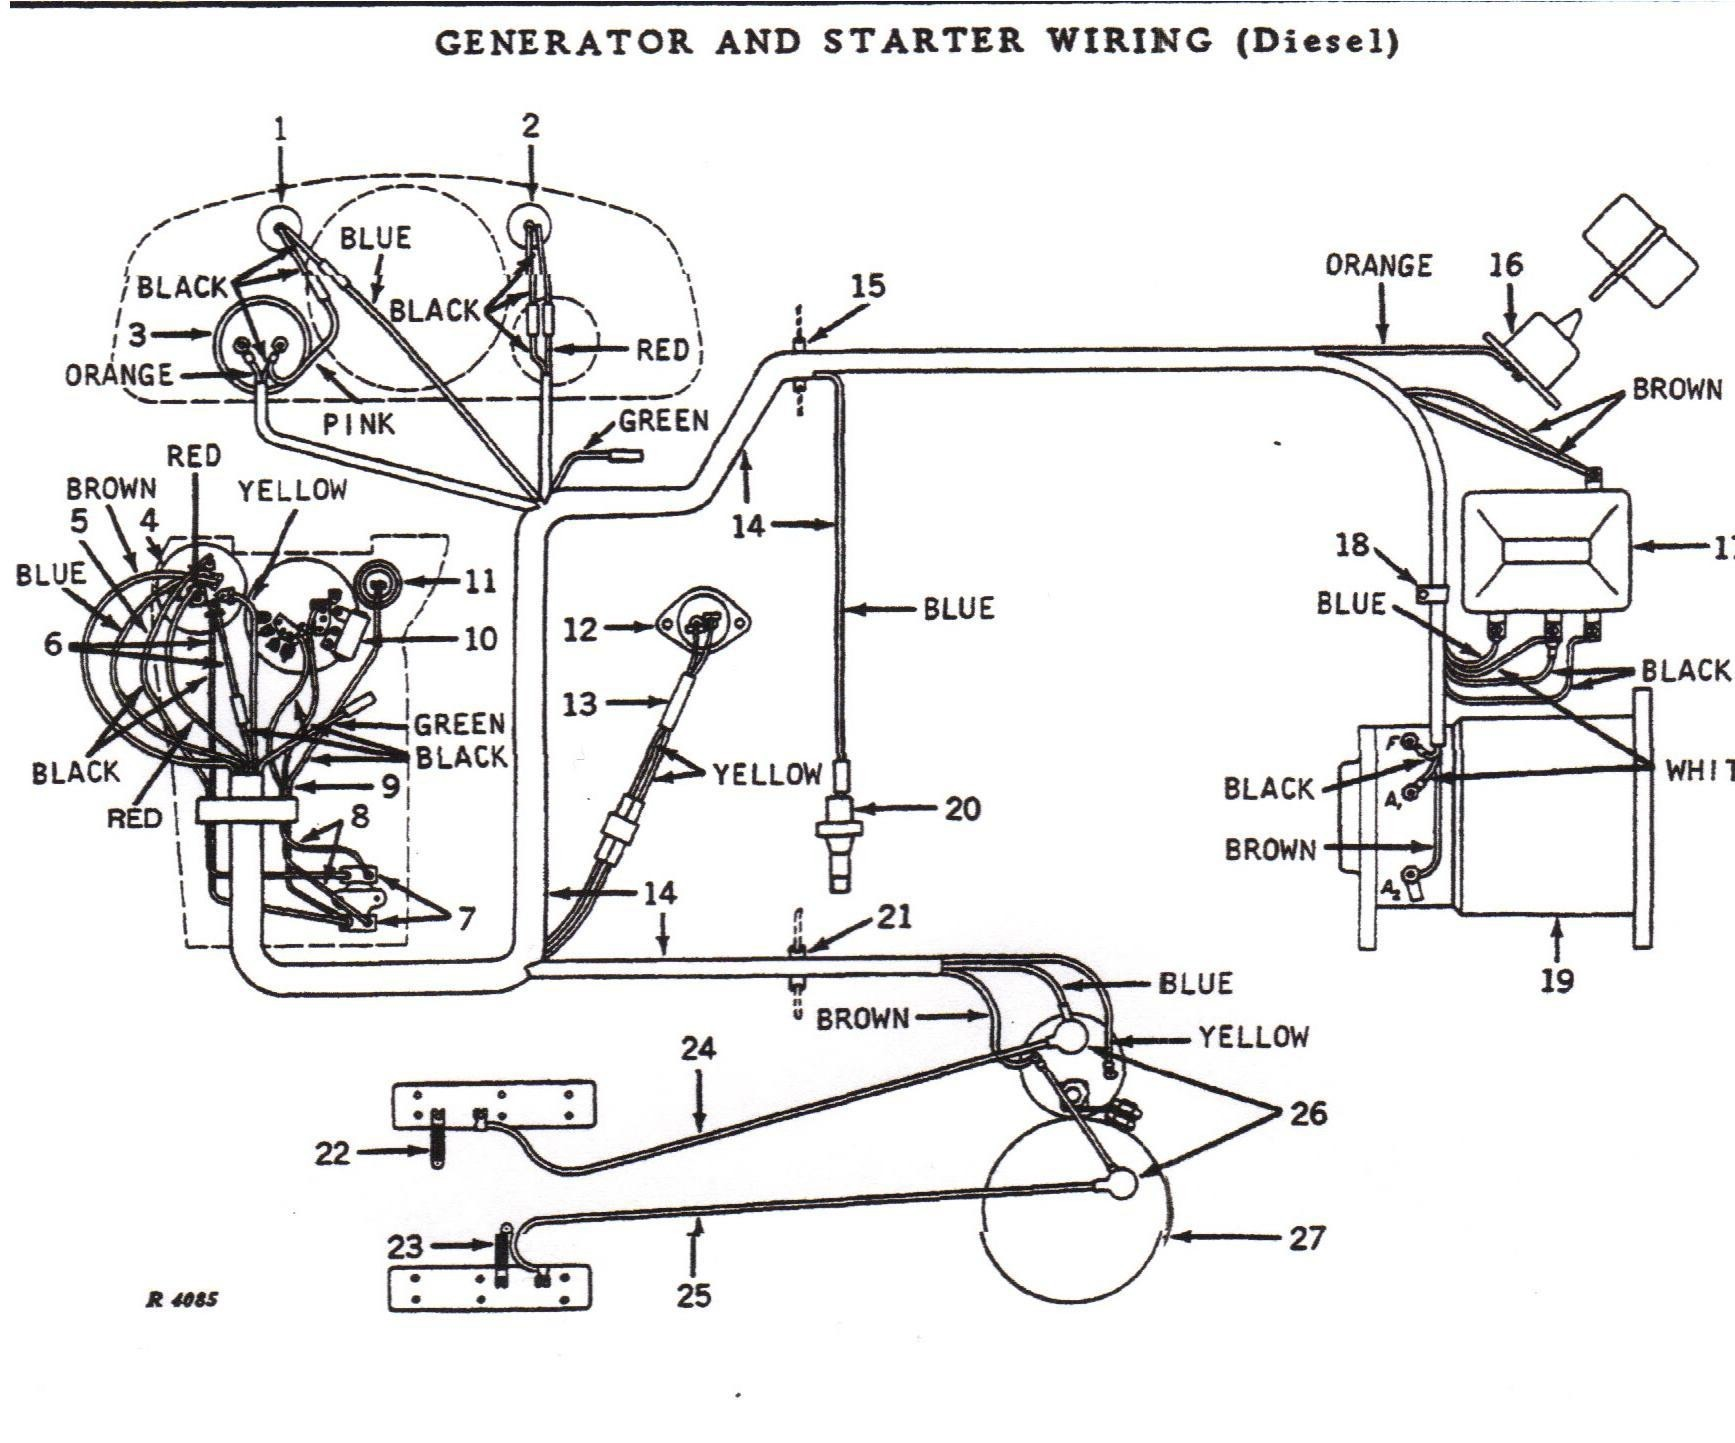 John Deere L125 Wiring Diagram | Repair Manual on